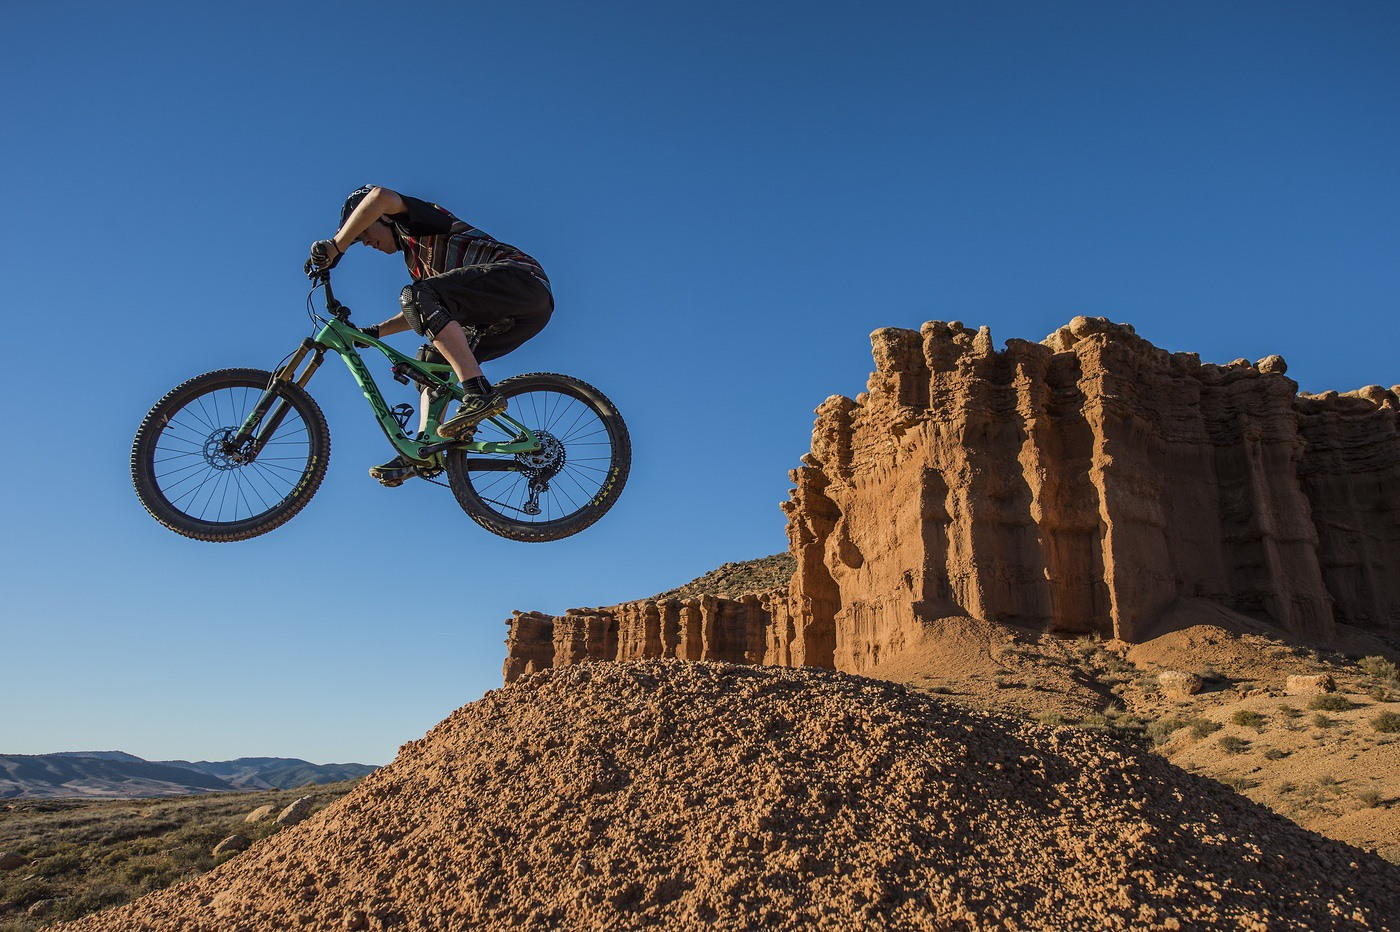 Calatayud Bike - Far West Trails: Nueva red de rutas en Calatayud